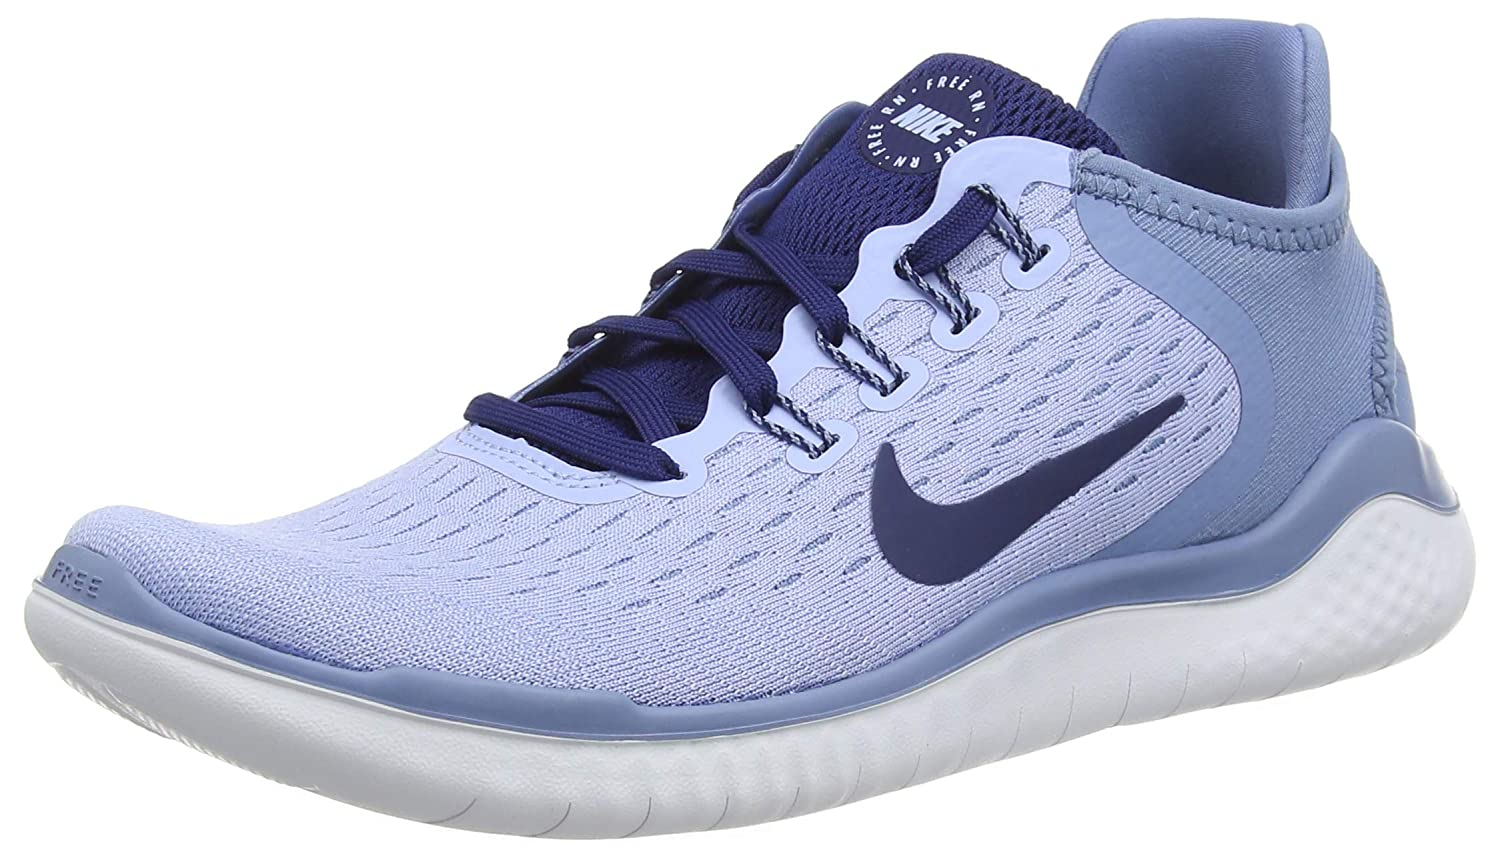 low cost ff7a5 46e7b Amazon.com  Nike Womens Free Run 2018 Running Shoes (8 B US, Aluminum Blue  Void Work Blue White)  Sports   Outdoors